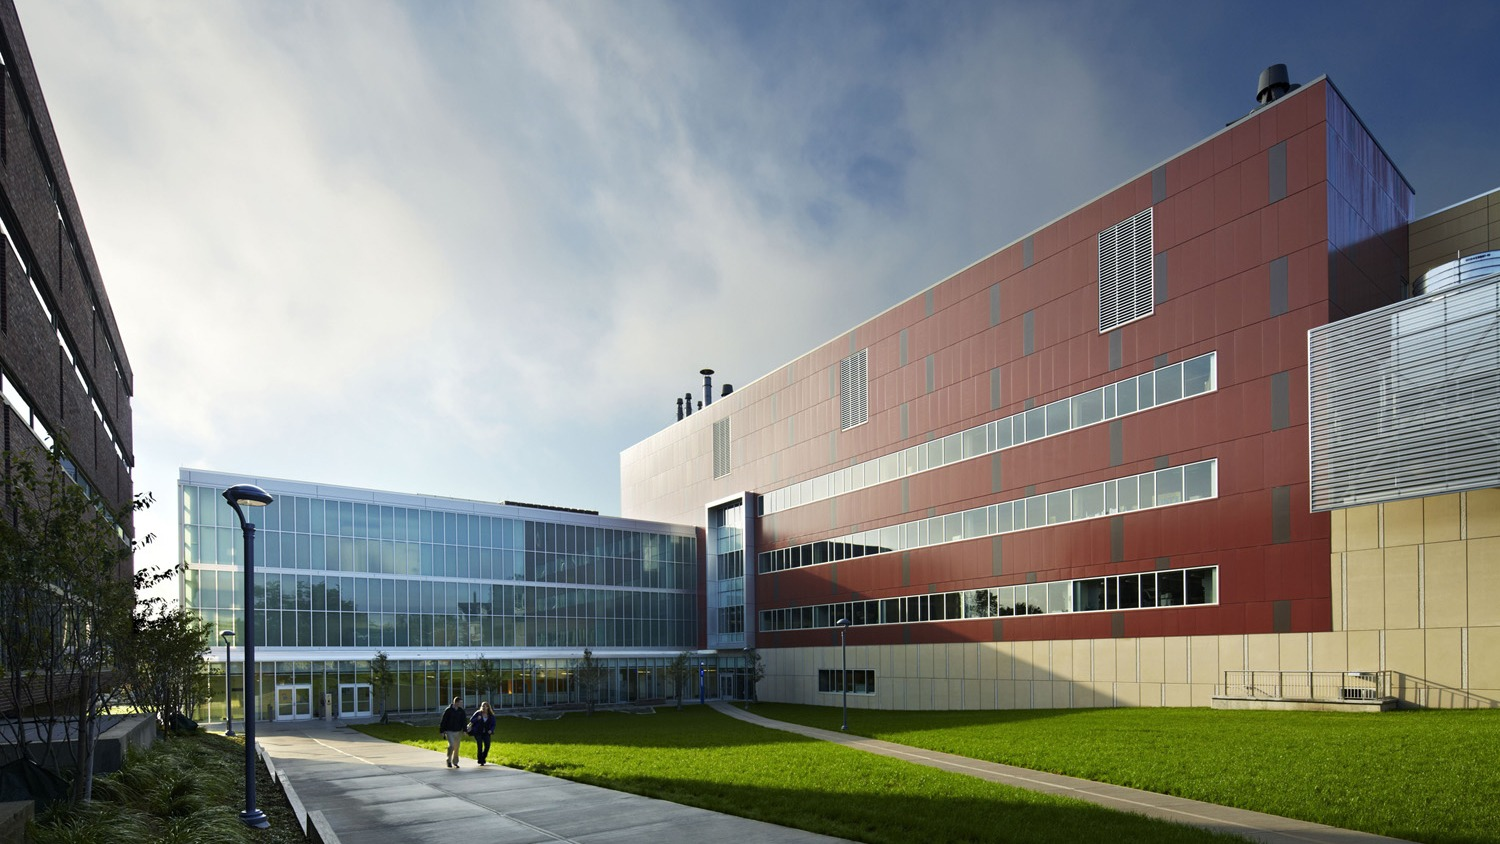 UMass Lowell Emerging Technologies Center Dassault Systemes Learning Center